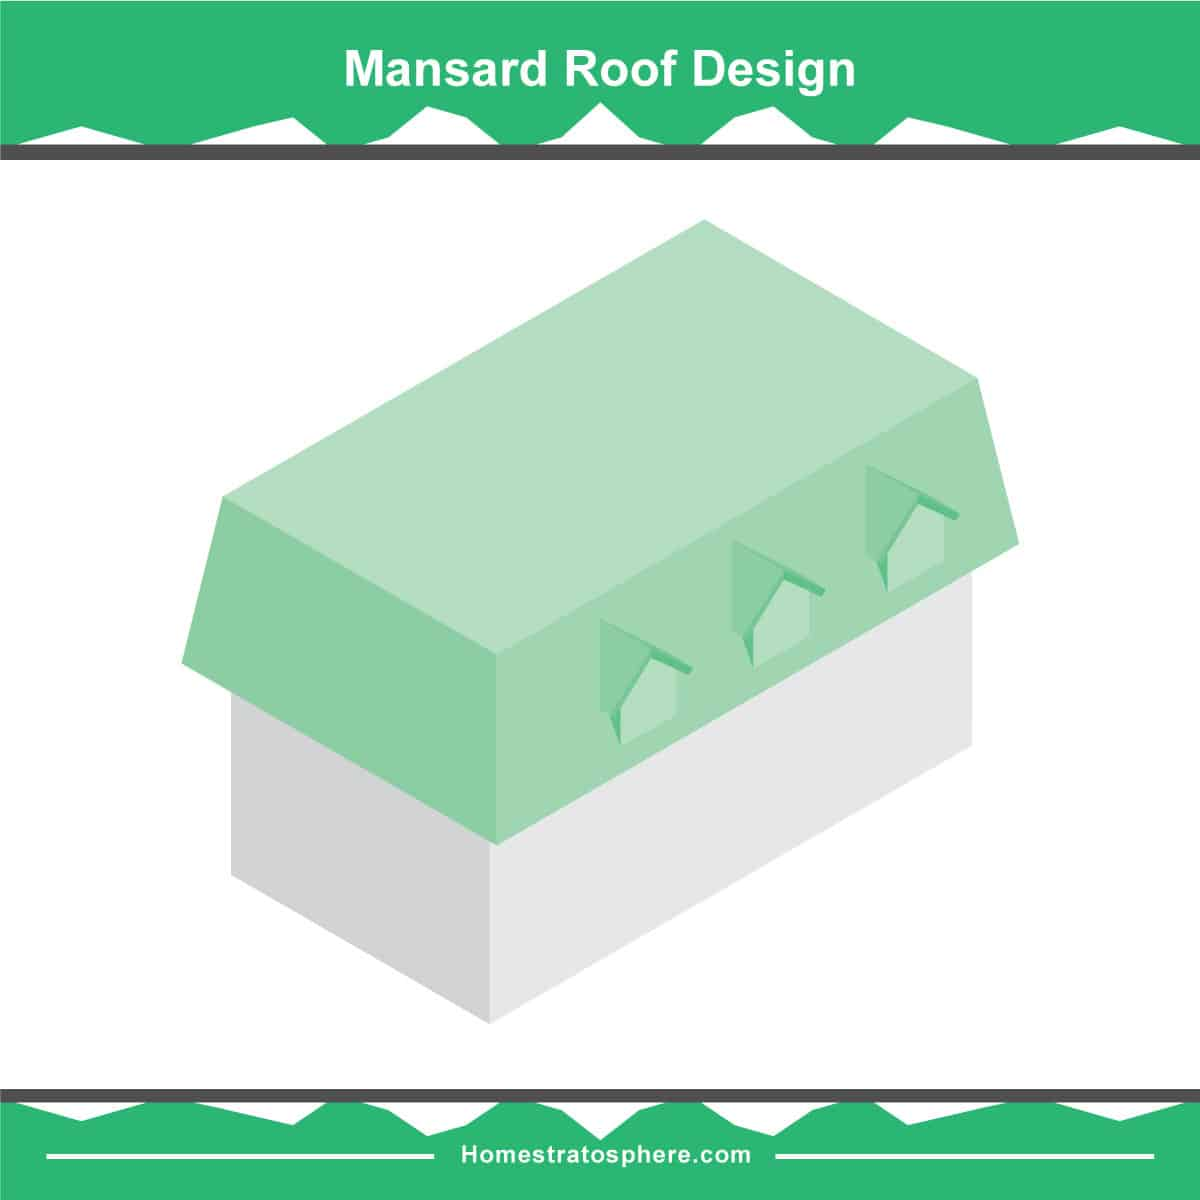 Mansard roof with dormers diagram